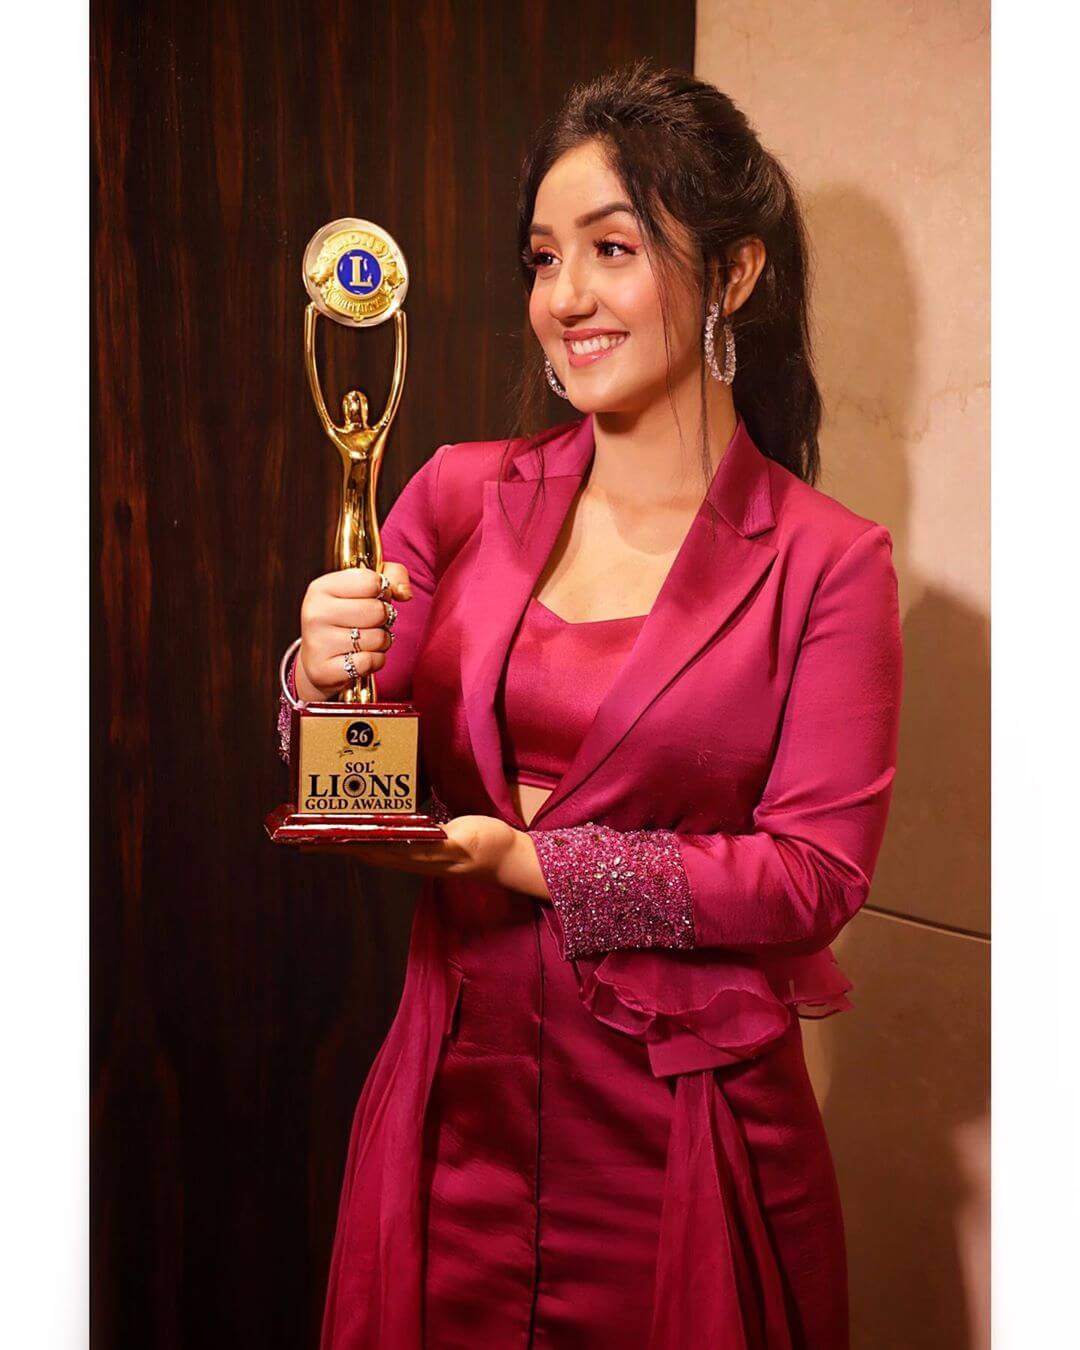 ashnoor kaur awards and nominations